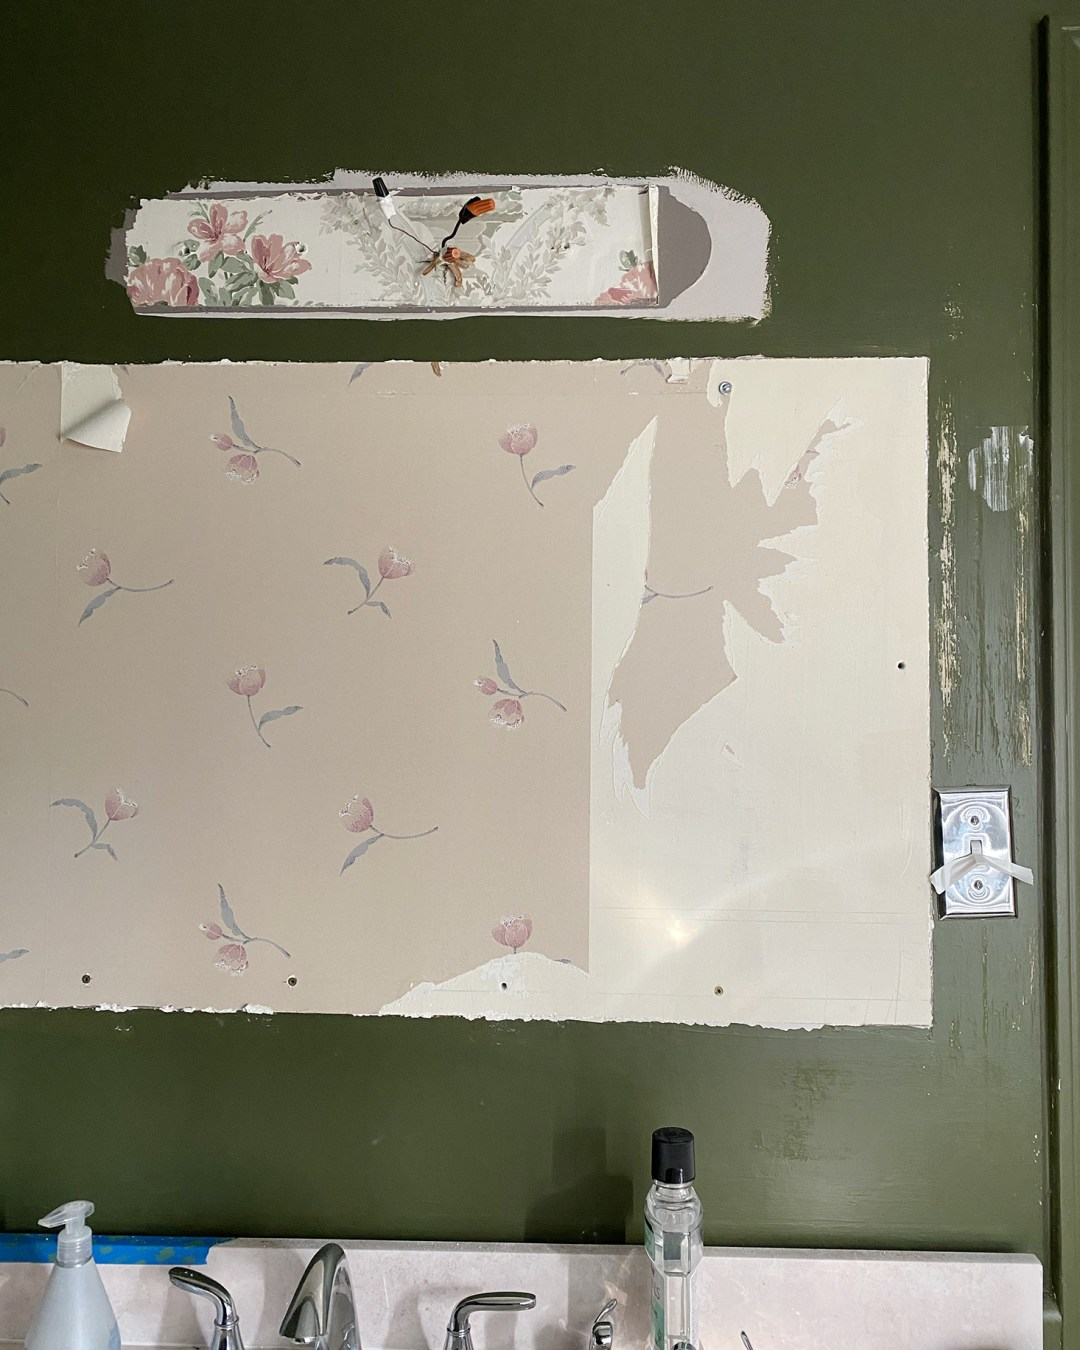 Removing Wallpaper Behind MIrror